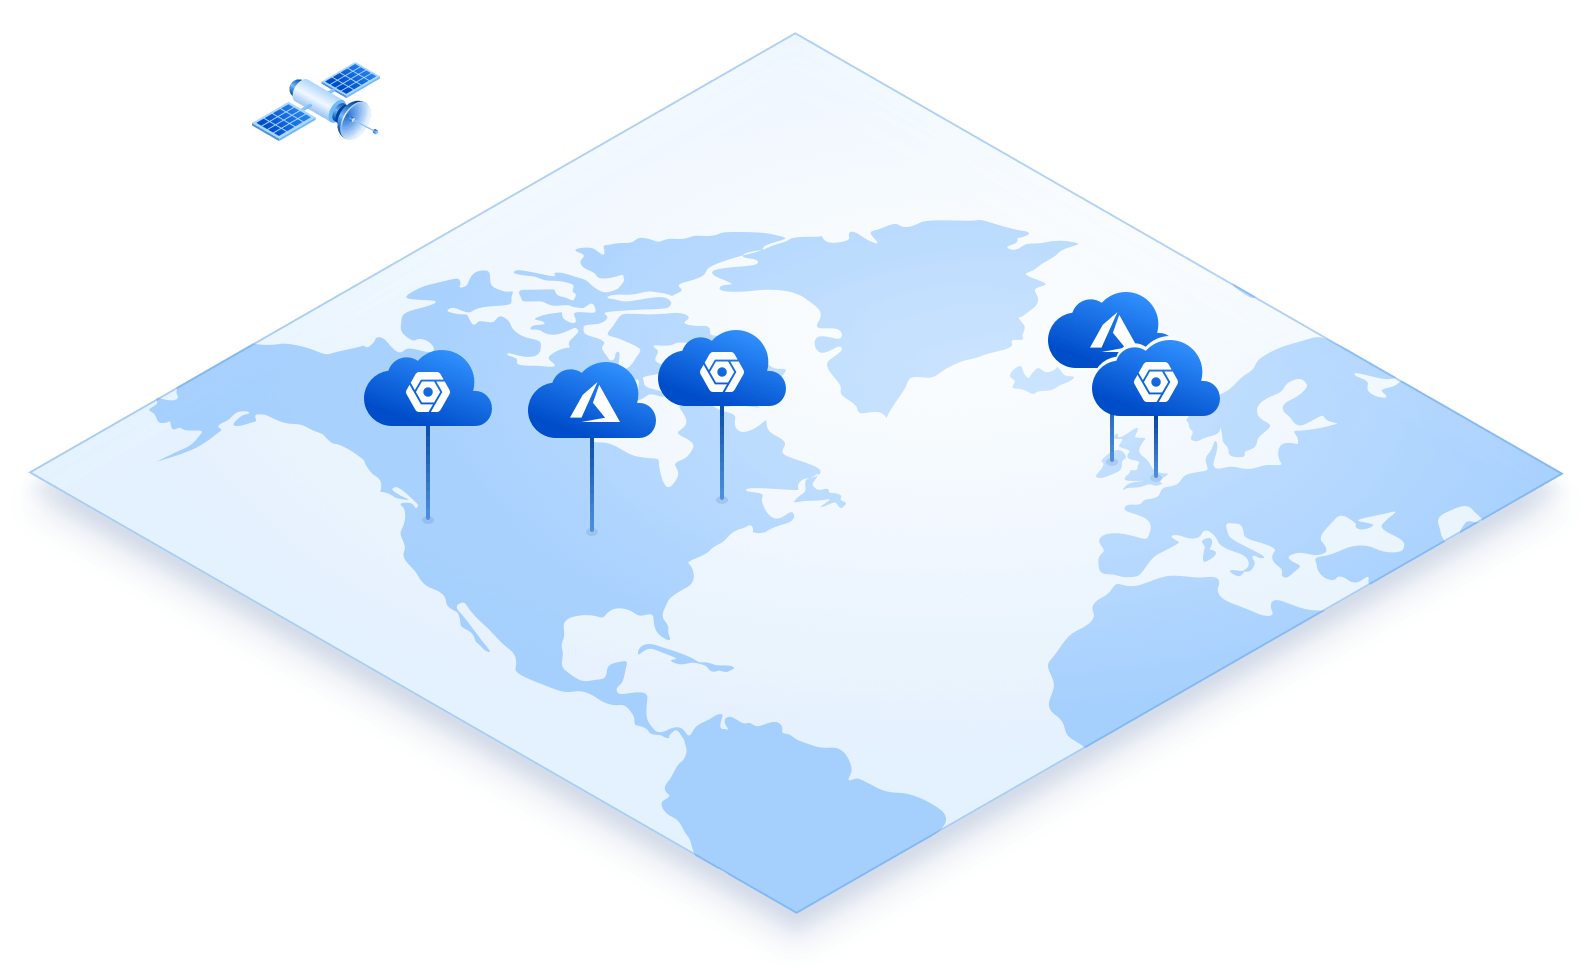 Google Cloud Platform and Microsoft Azure